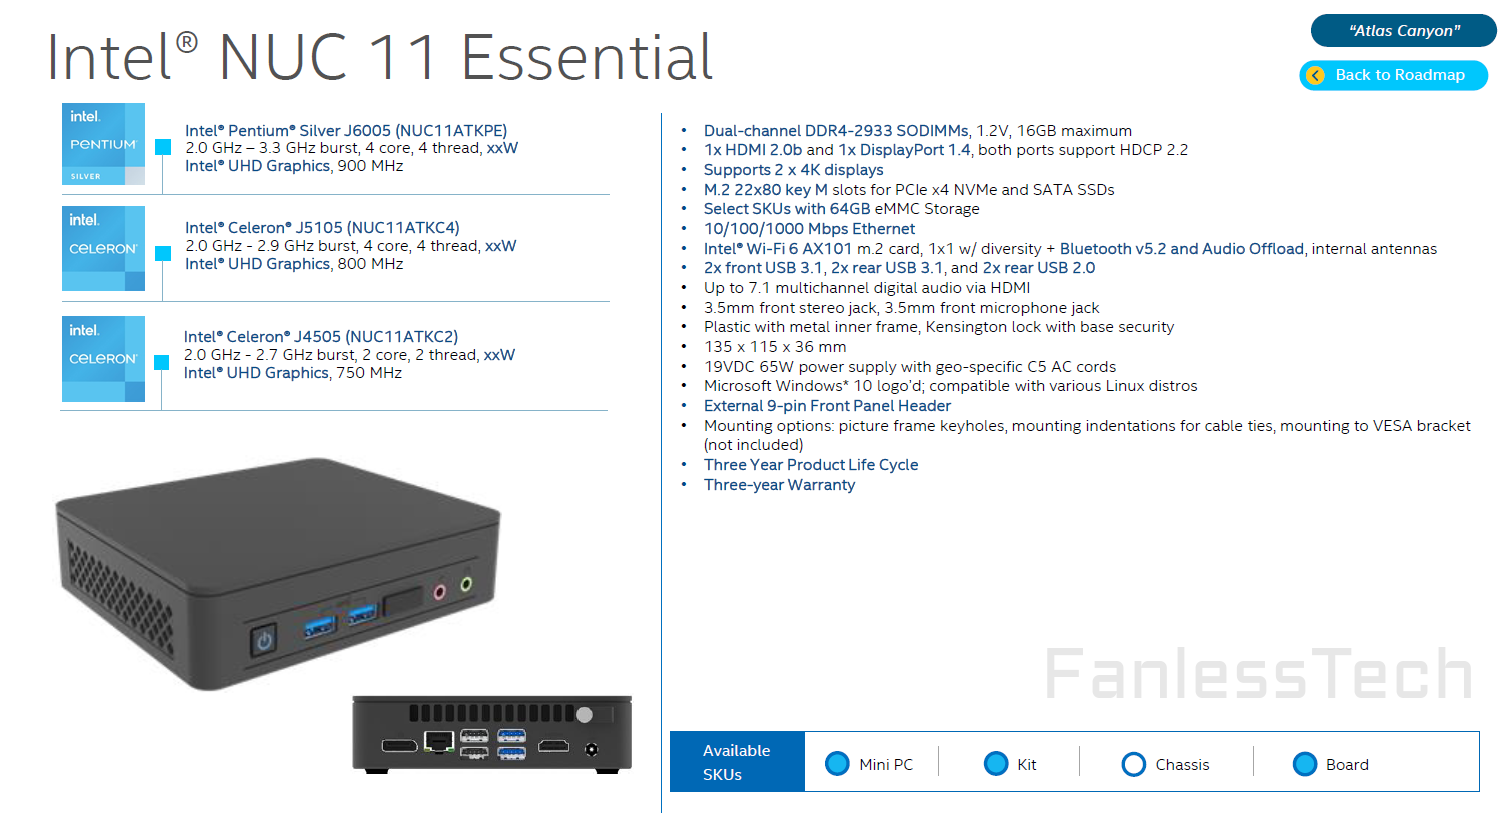 Intel 10nm Jasper Lake Powered NUC 11 Essential 'Atlas Canyon' Mini PC Pictured & Detailed, Up To 4 CPU Cores & Gen 11 Graphics